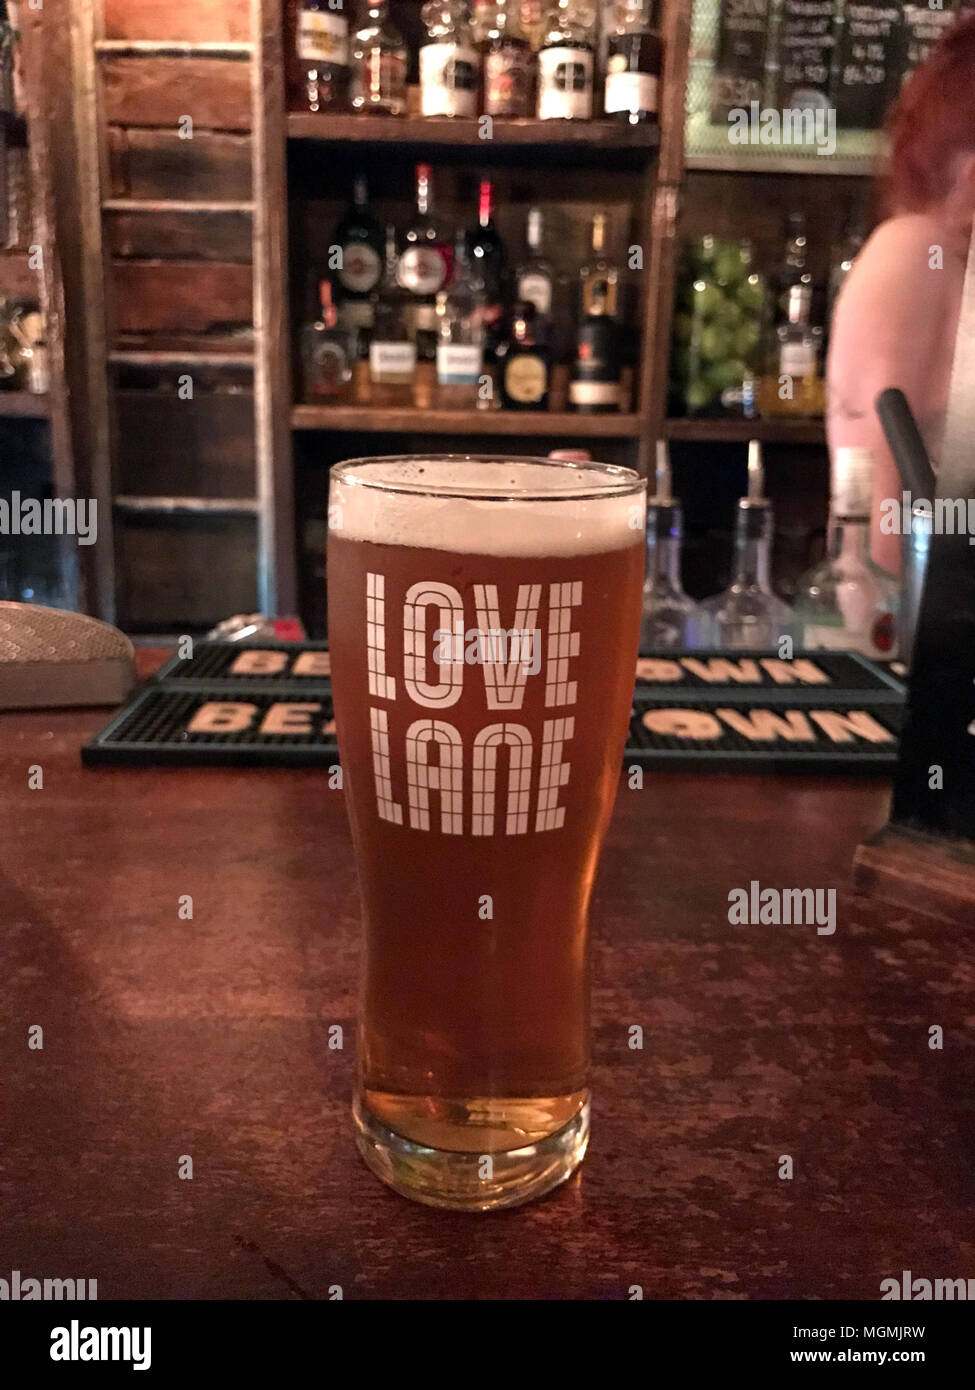 GoTonySmith,Love,Lane,Romance,Romantic,Romantic Beer,Craft,beer,bers,pint,Pint Pot,Glass,on,a,bar,pub,real,ale,RealAle,CAMRA,British,GB,Great British,local,Warrington,Beers,Ale,Liverpool,logo,logo on a glass,hops,rink,drinking,alcohol,consumption,Alcohol consumption,dangers of drinking,binge drinking,session,Session Beers